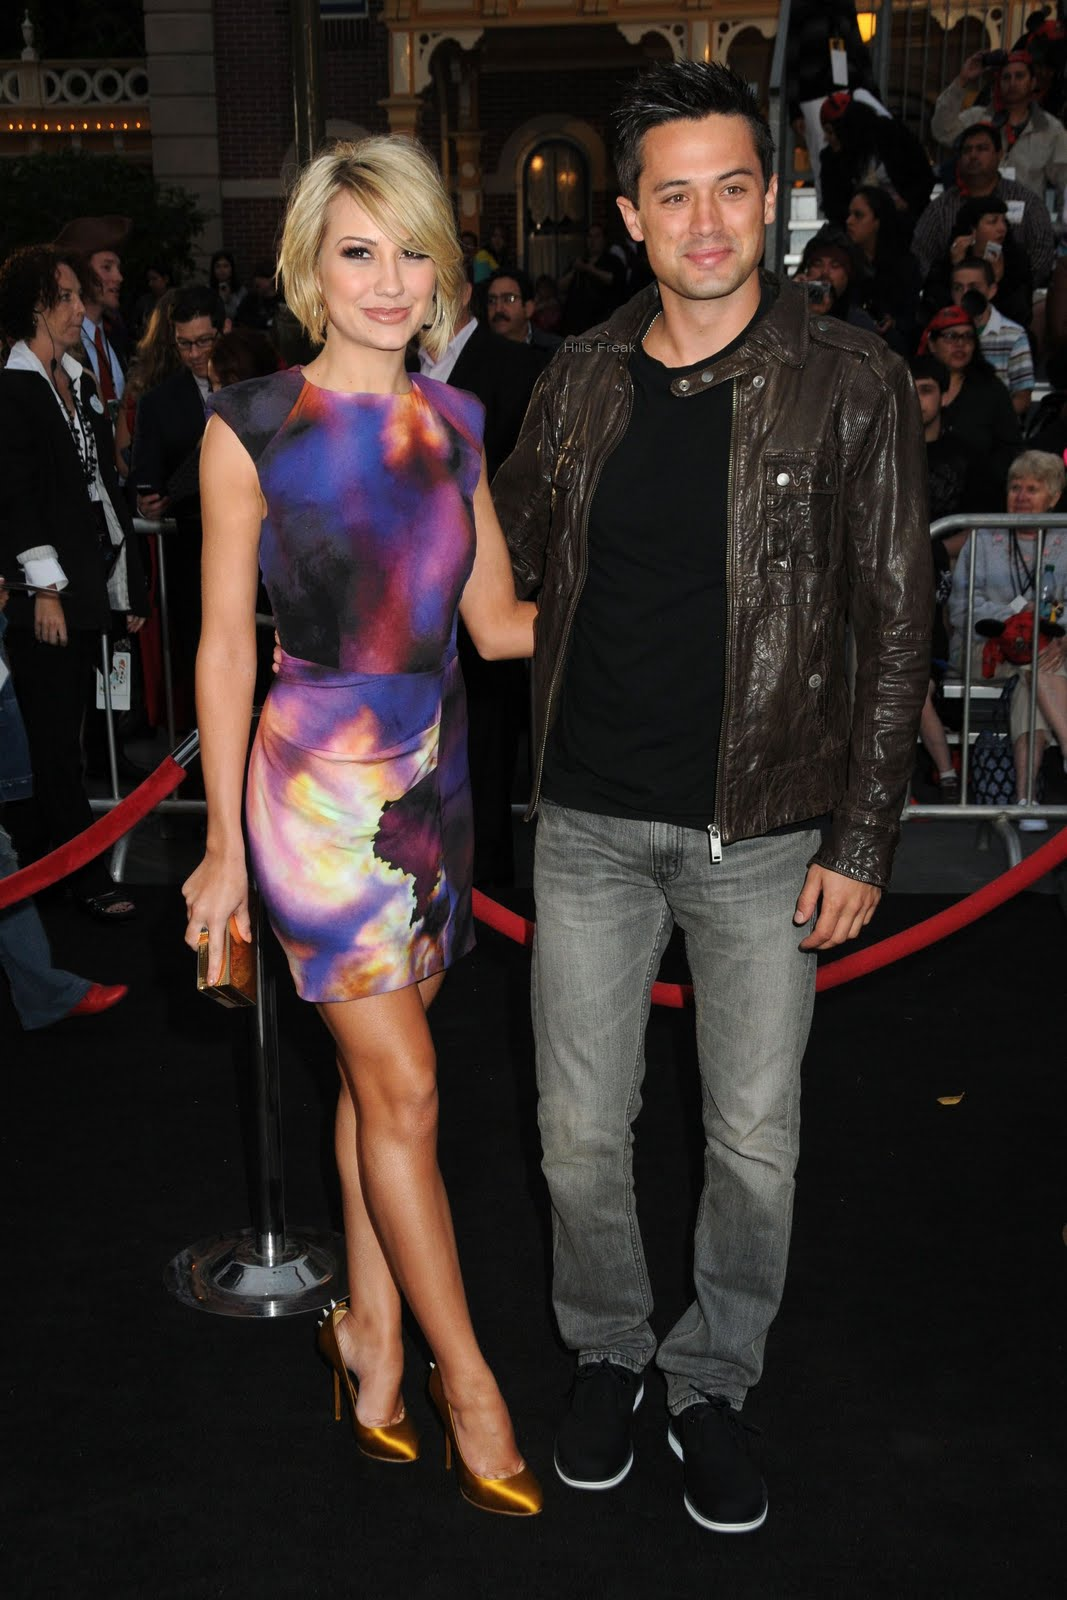 Chelsea kane dating in Perth